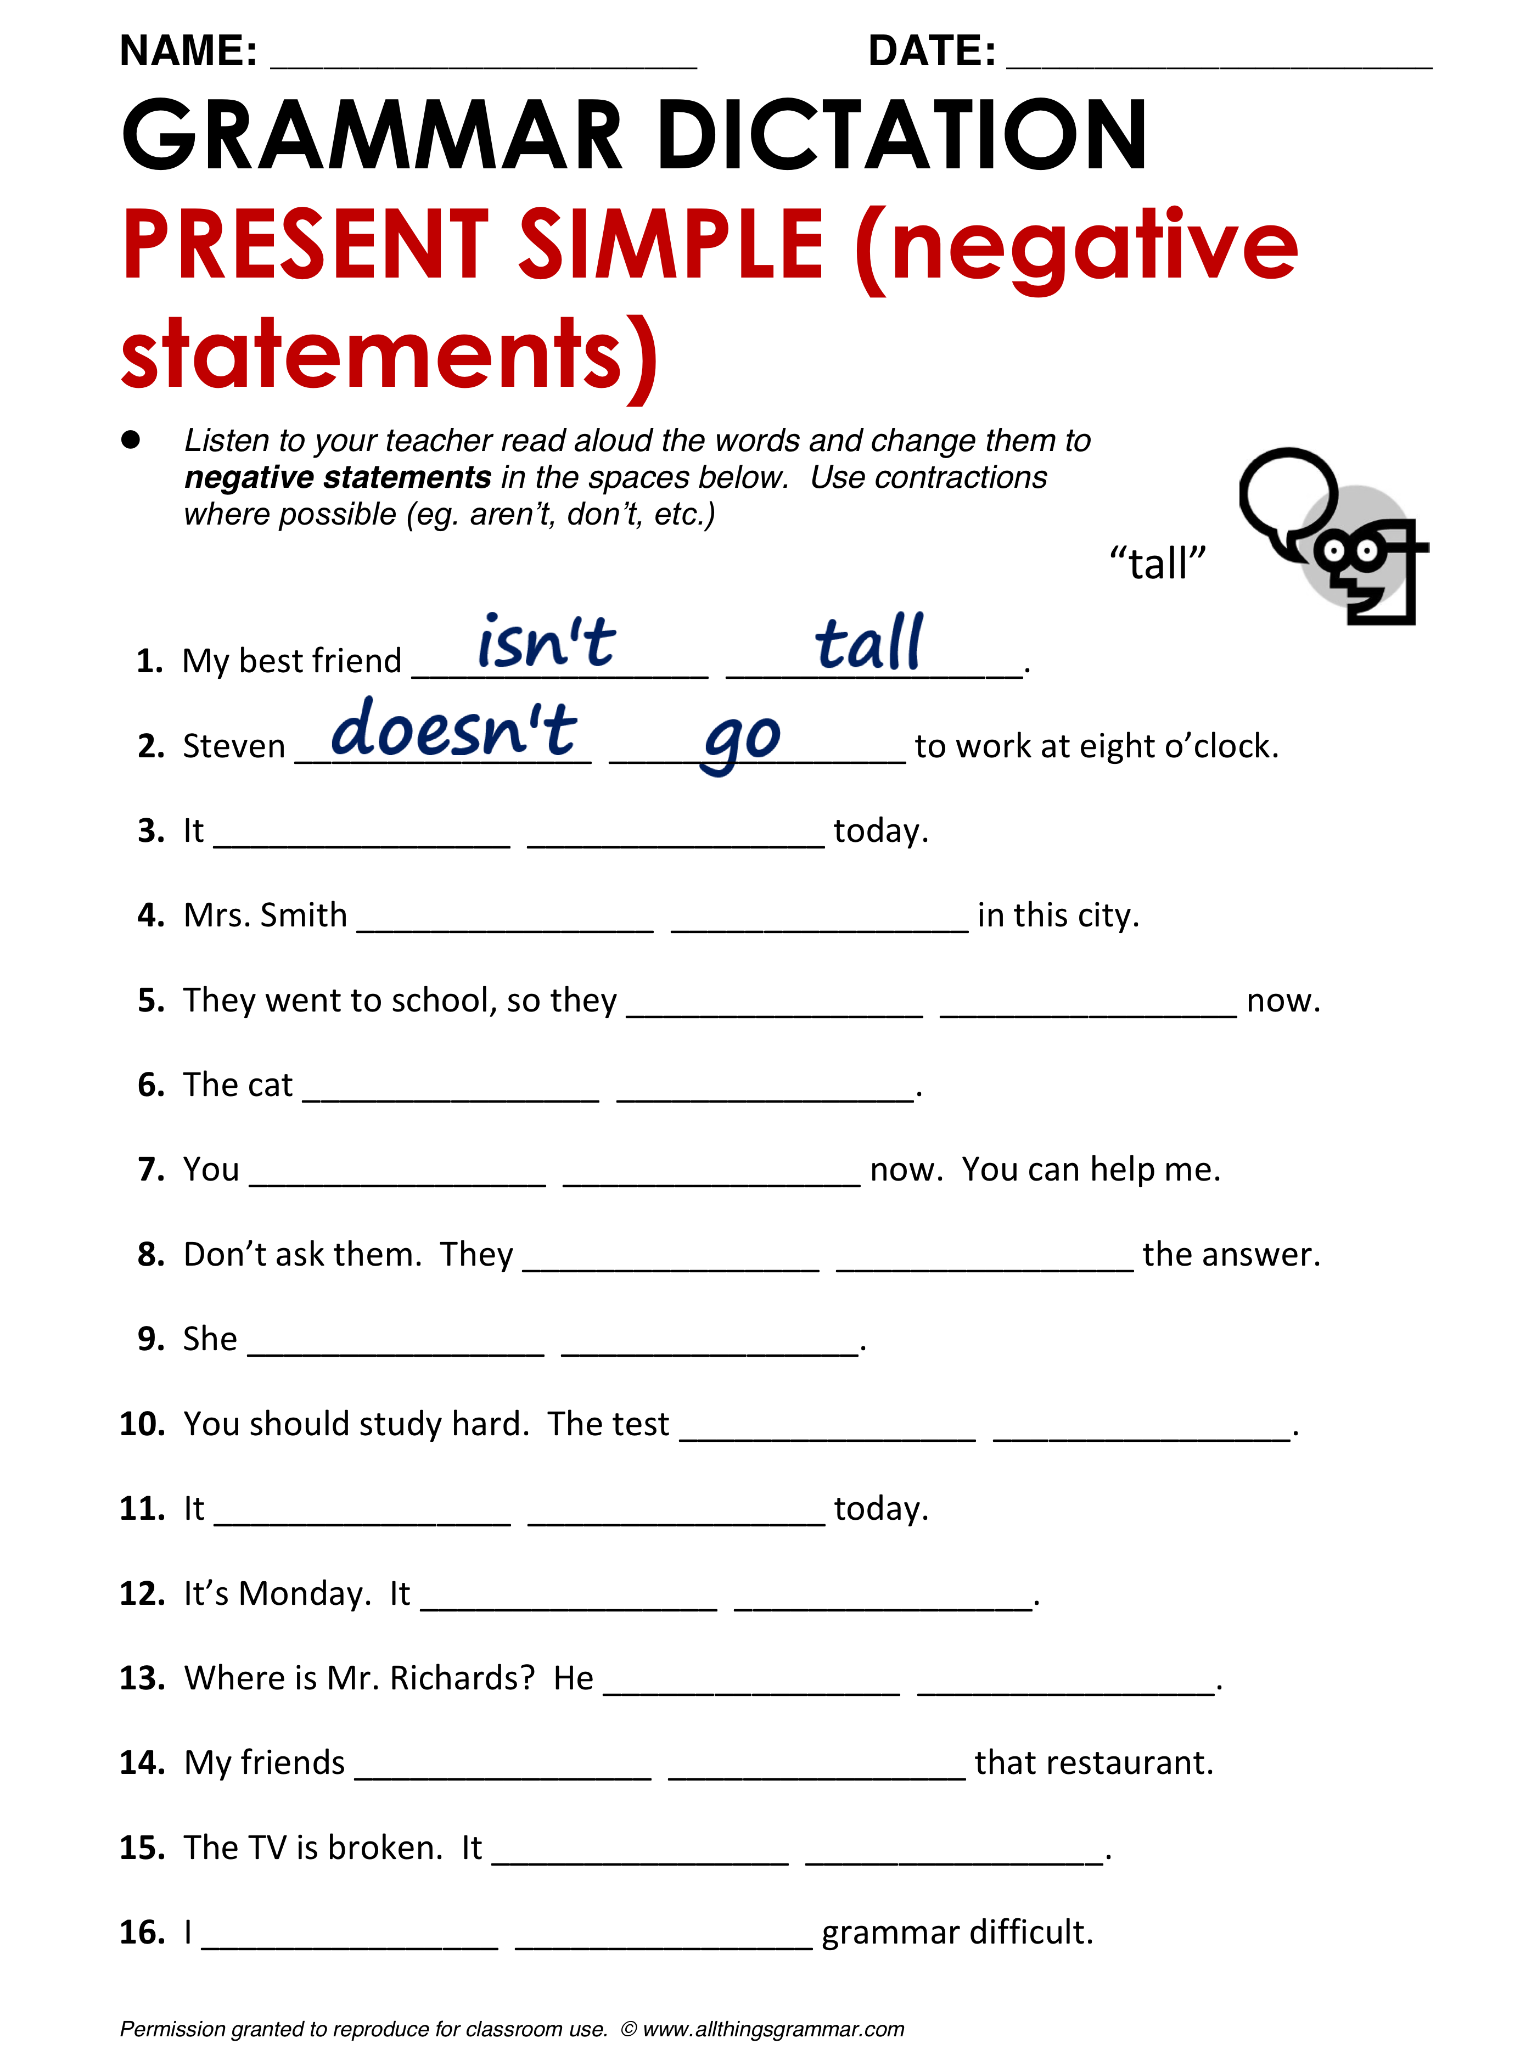 Negative Statements Worksheet